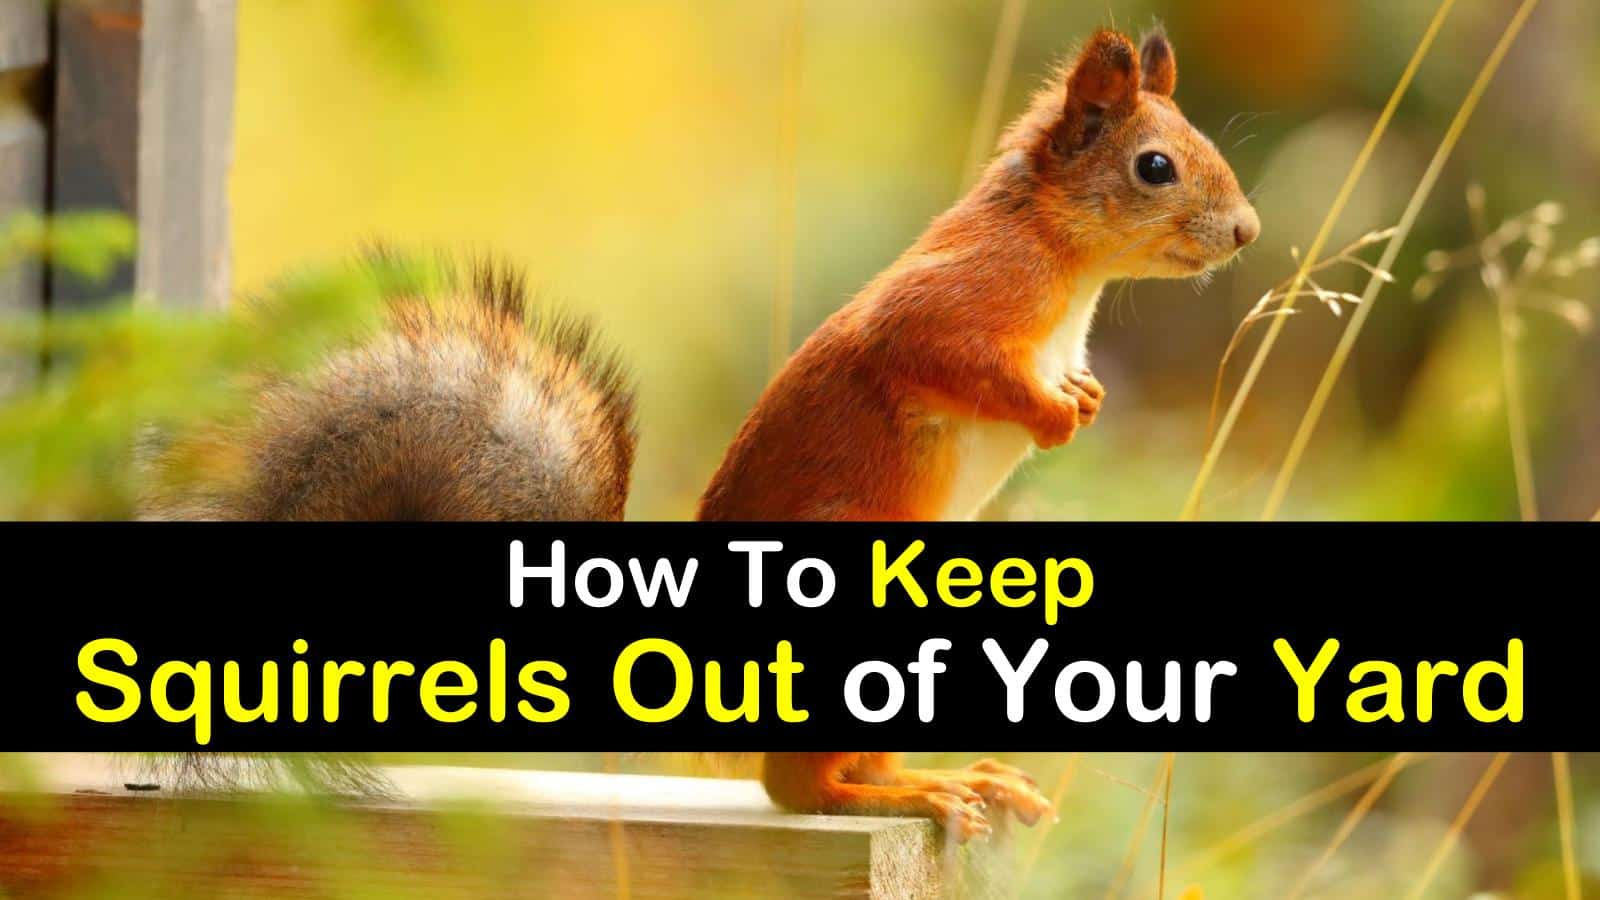 How to Keep Squirrels Out of Your Yard titleimg1